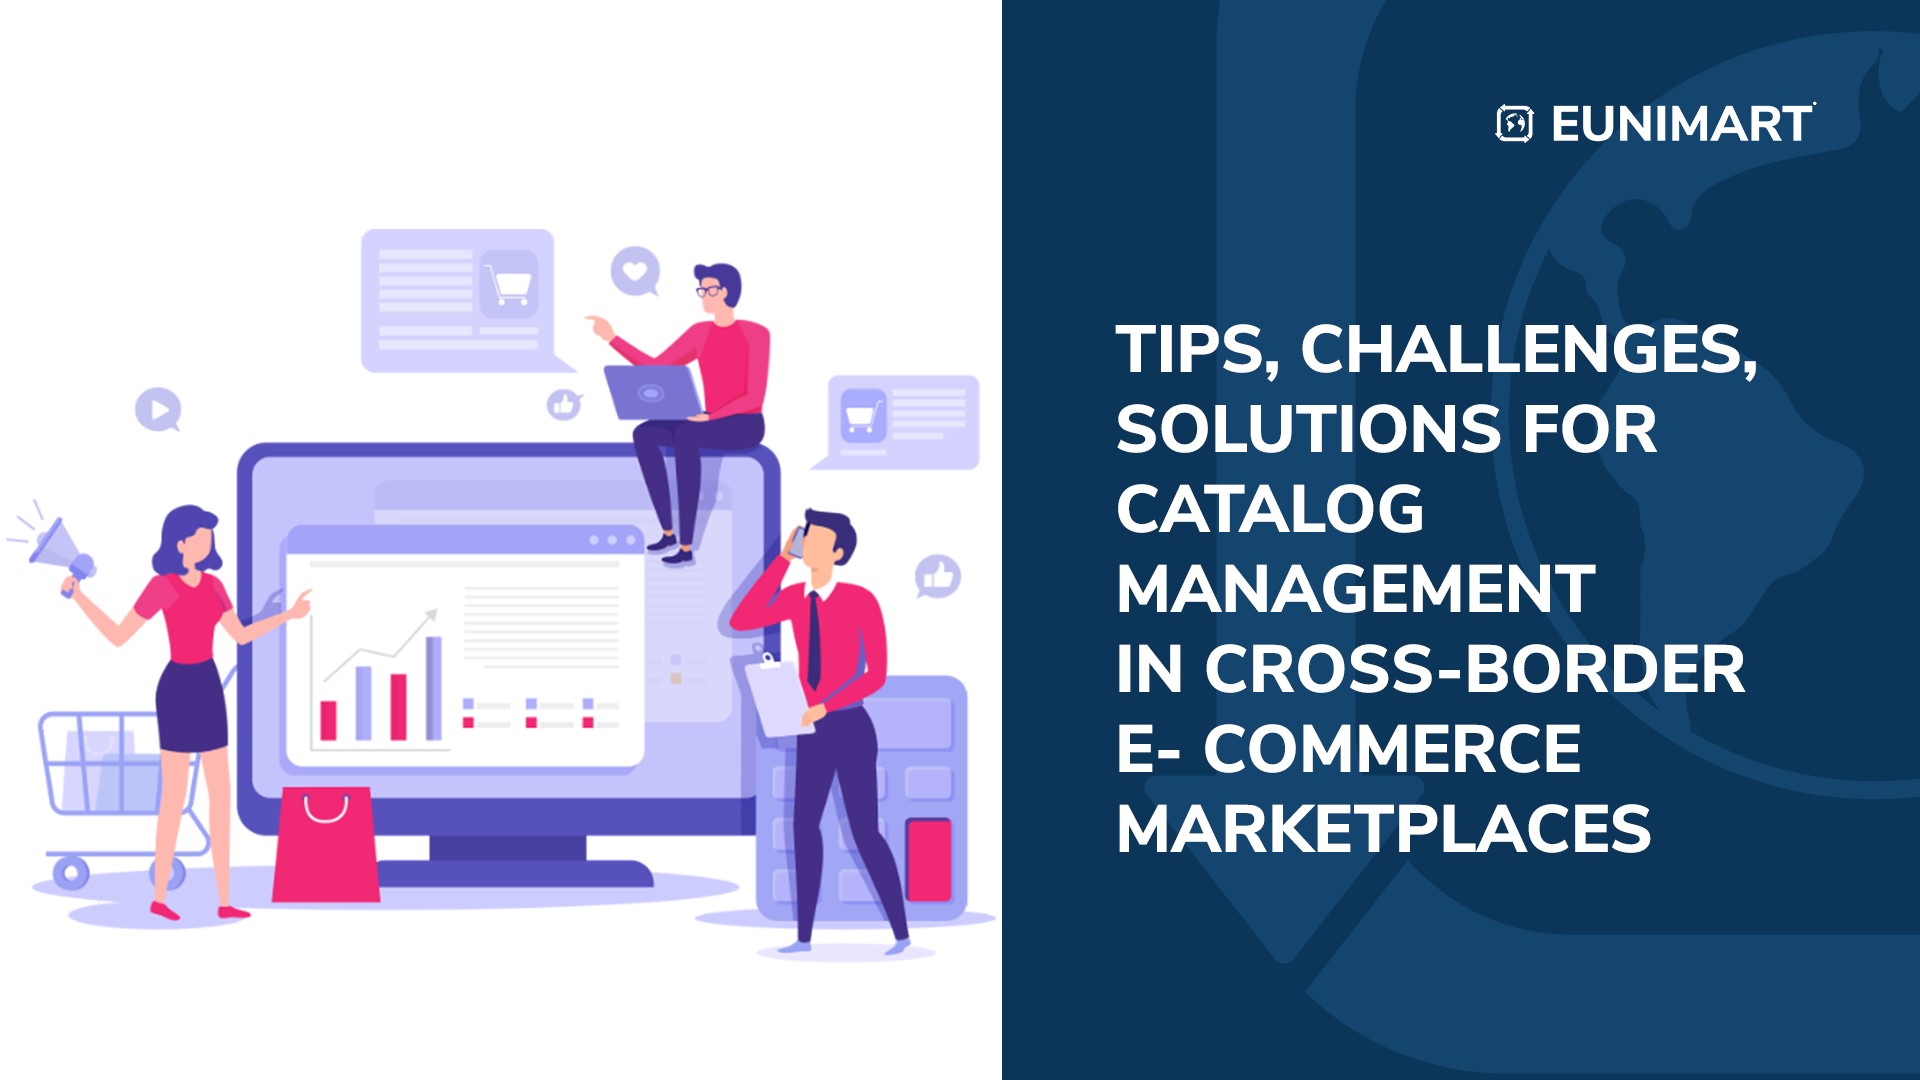 Tips, Challenges, Solutions for Catalog Management in Cross-border E- commerce Marketplaces